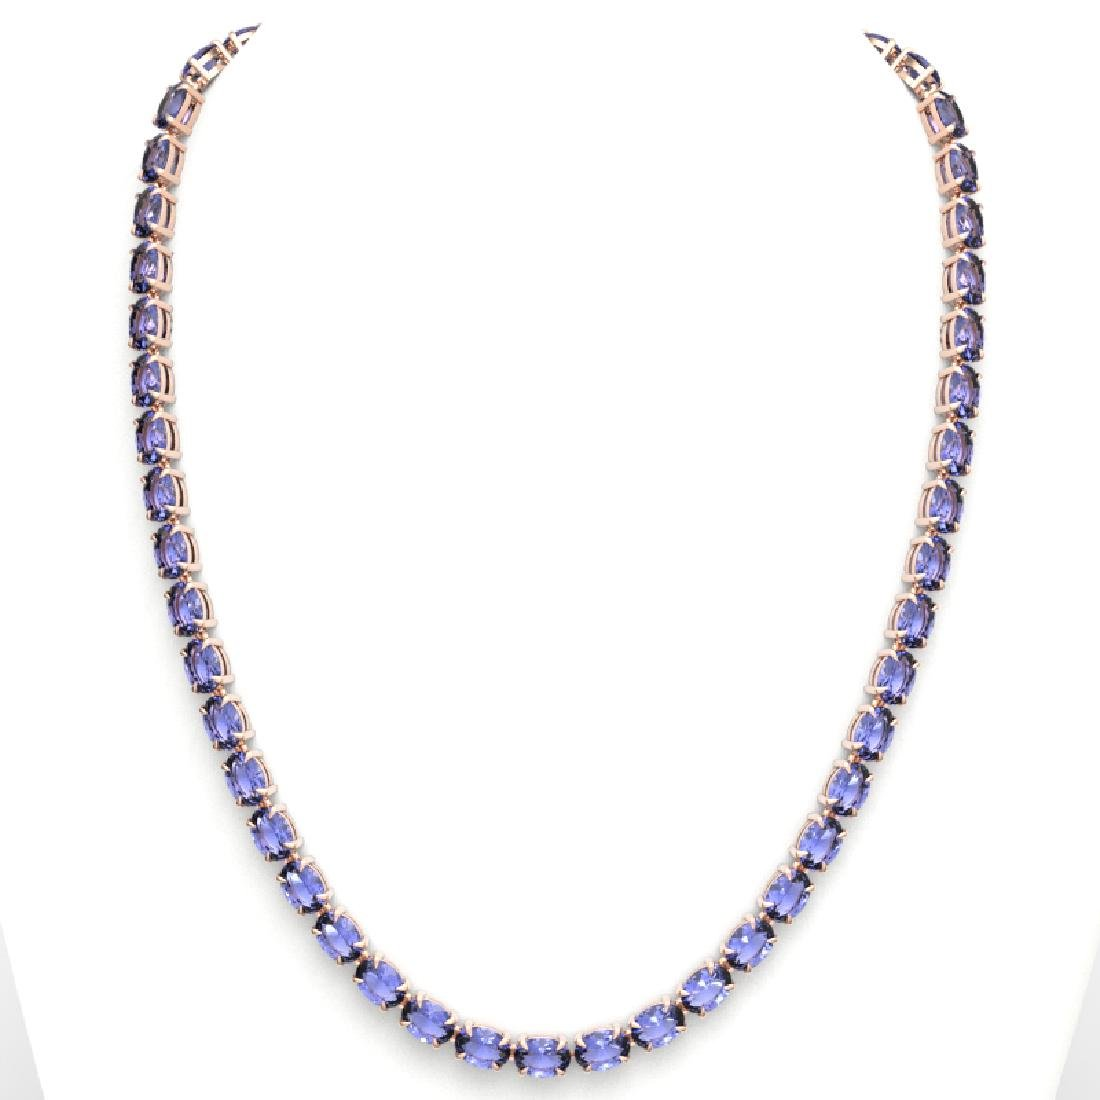 56 CTW Tanzanite Eternity Designer Inspired Tennis - 3